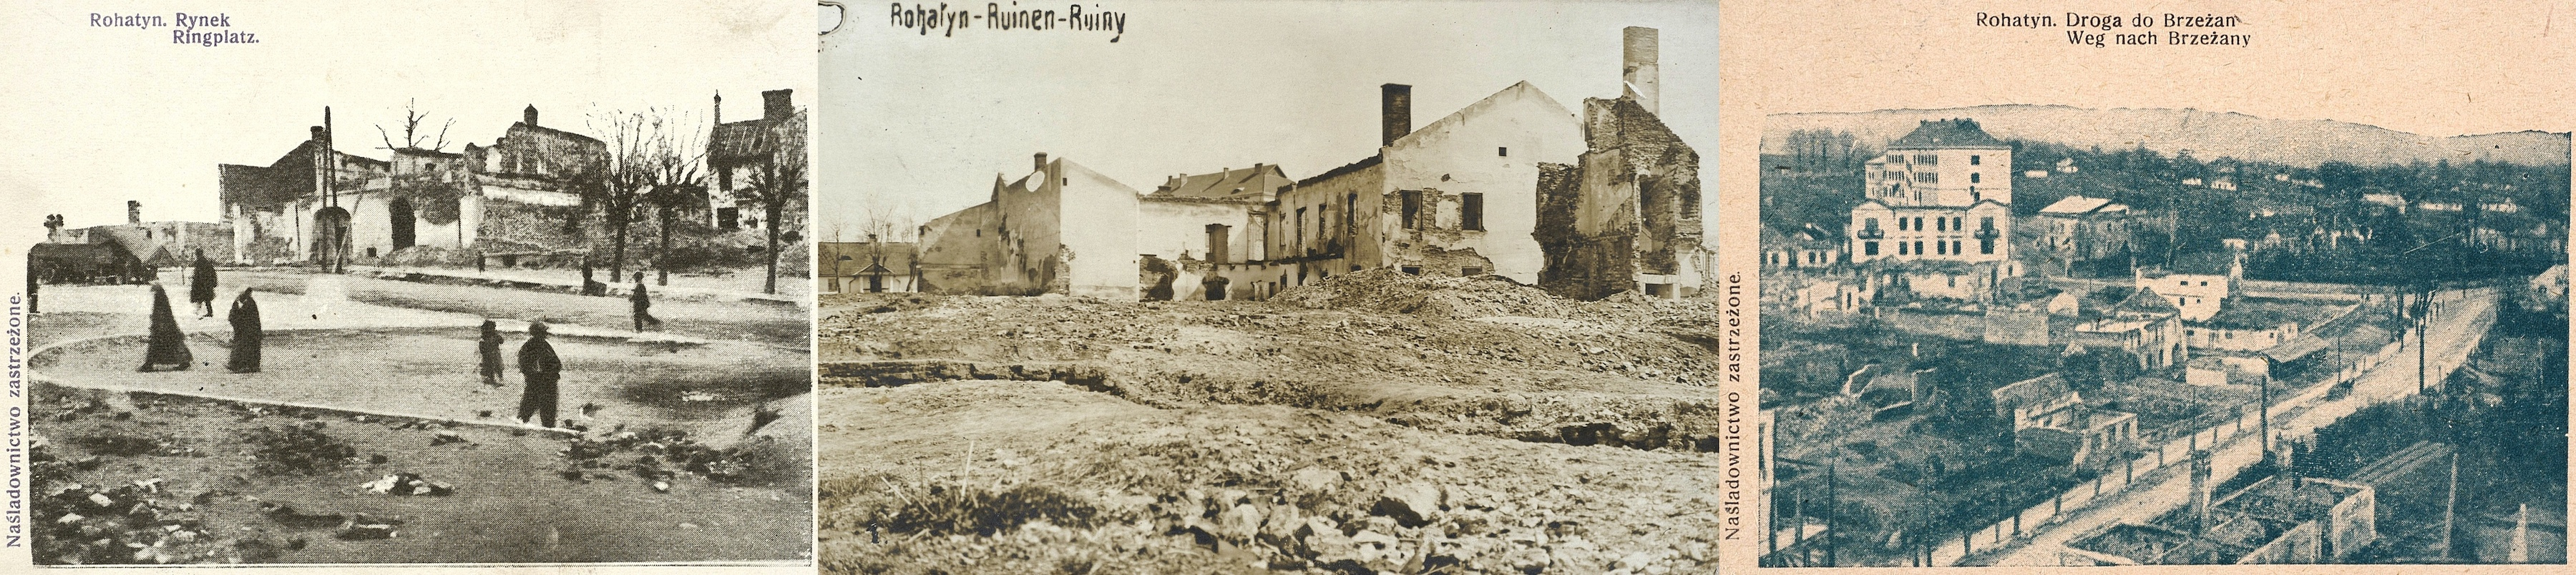 Contemporary postcards showing the war damage in Rohatyn